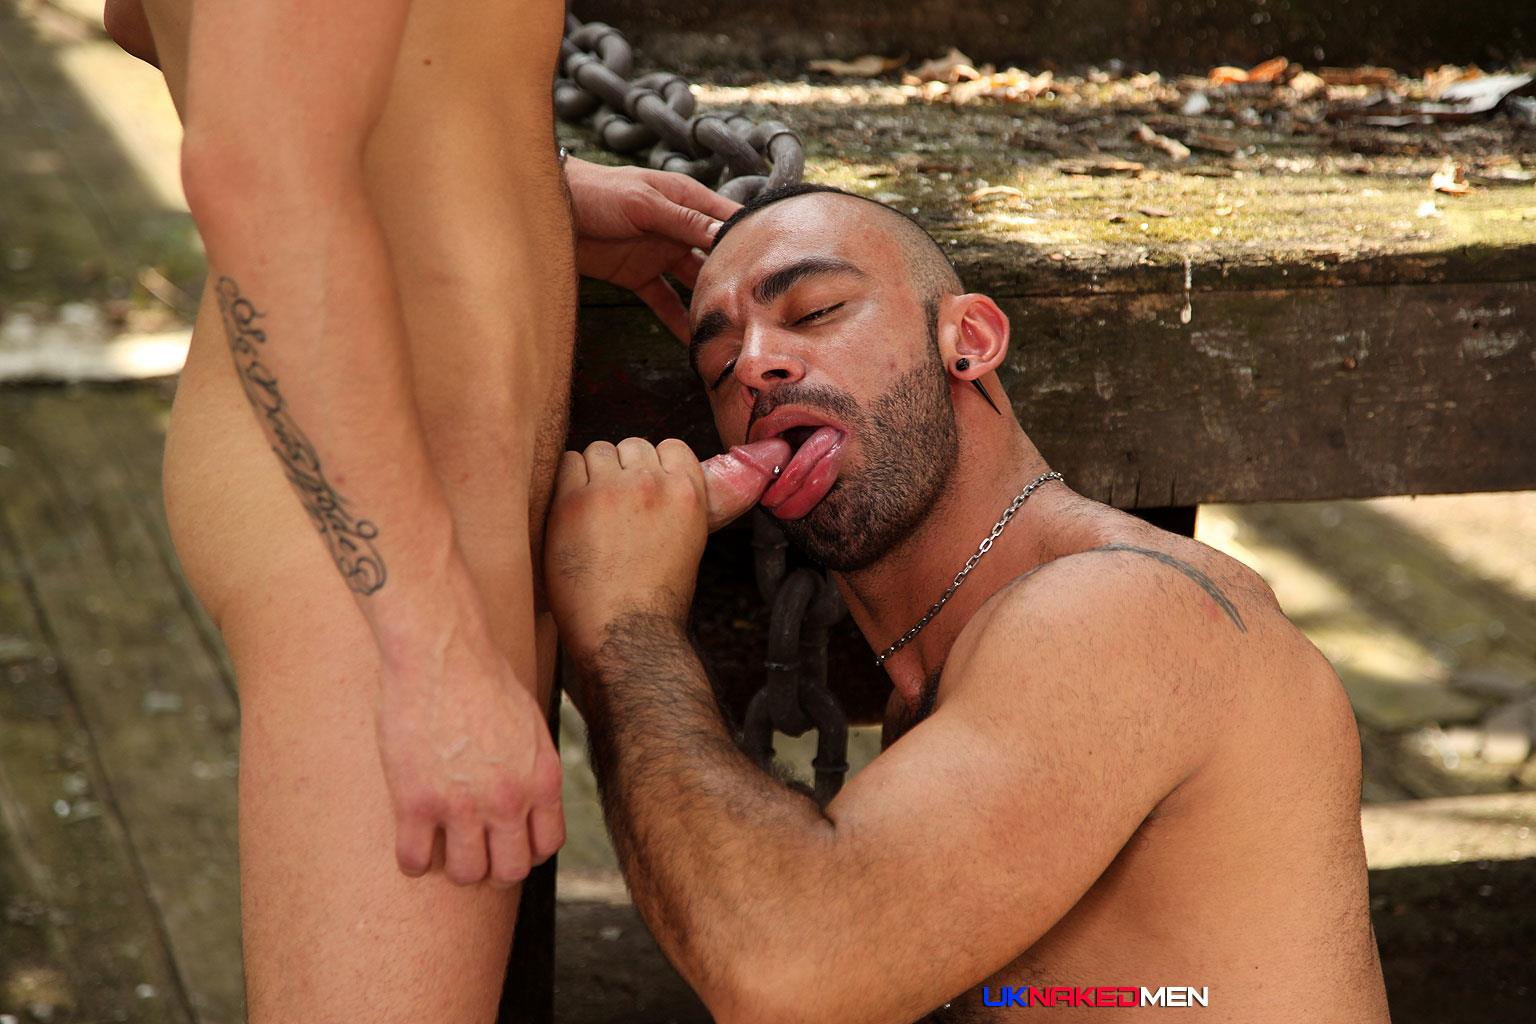 UK-Naked-Men-Fuck-Loving-Criminals-Episode-4-Tony-Thorn-and-Fabio-Lopez-Hairy-Arab-Fucking-A-Smooth-Guy-Amateur-Gay-Porn-15 Hairy Muscle Stud Tony Thorn Fucking Smooth Muscle Hunk Fabio Lopez